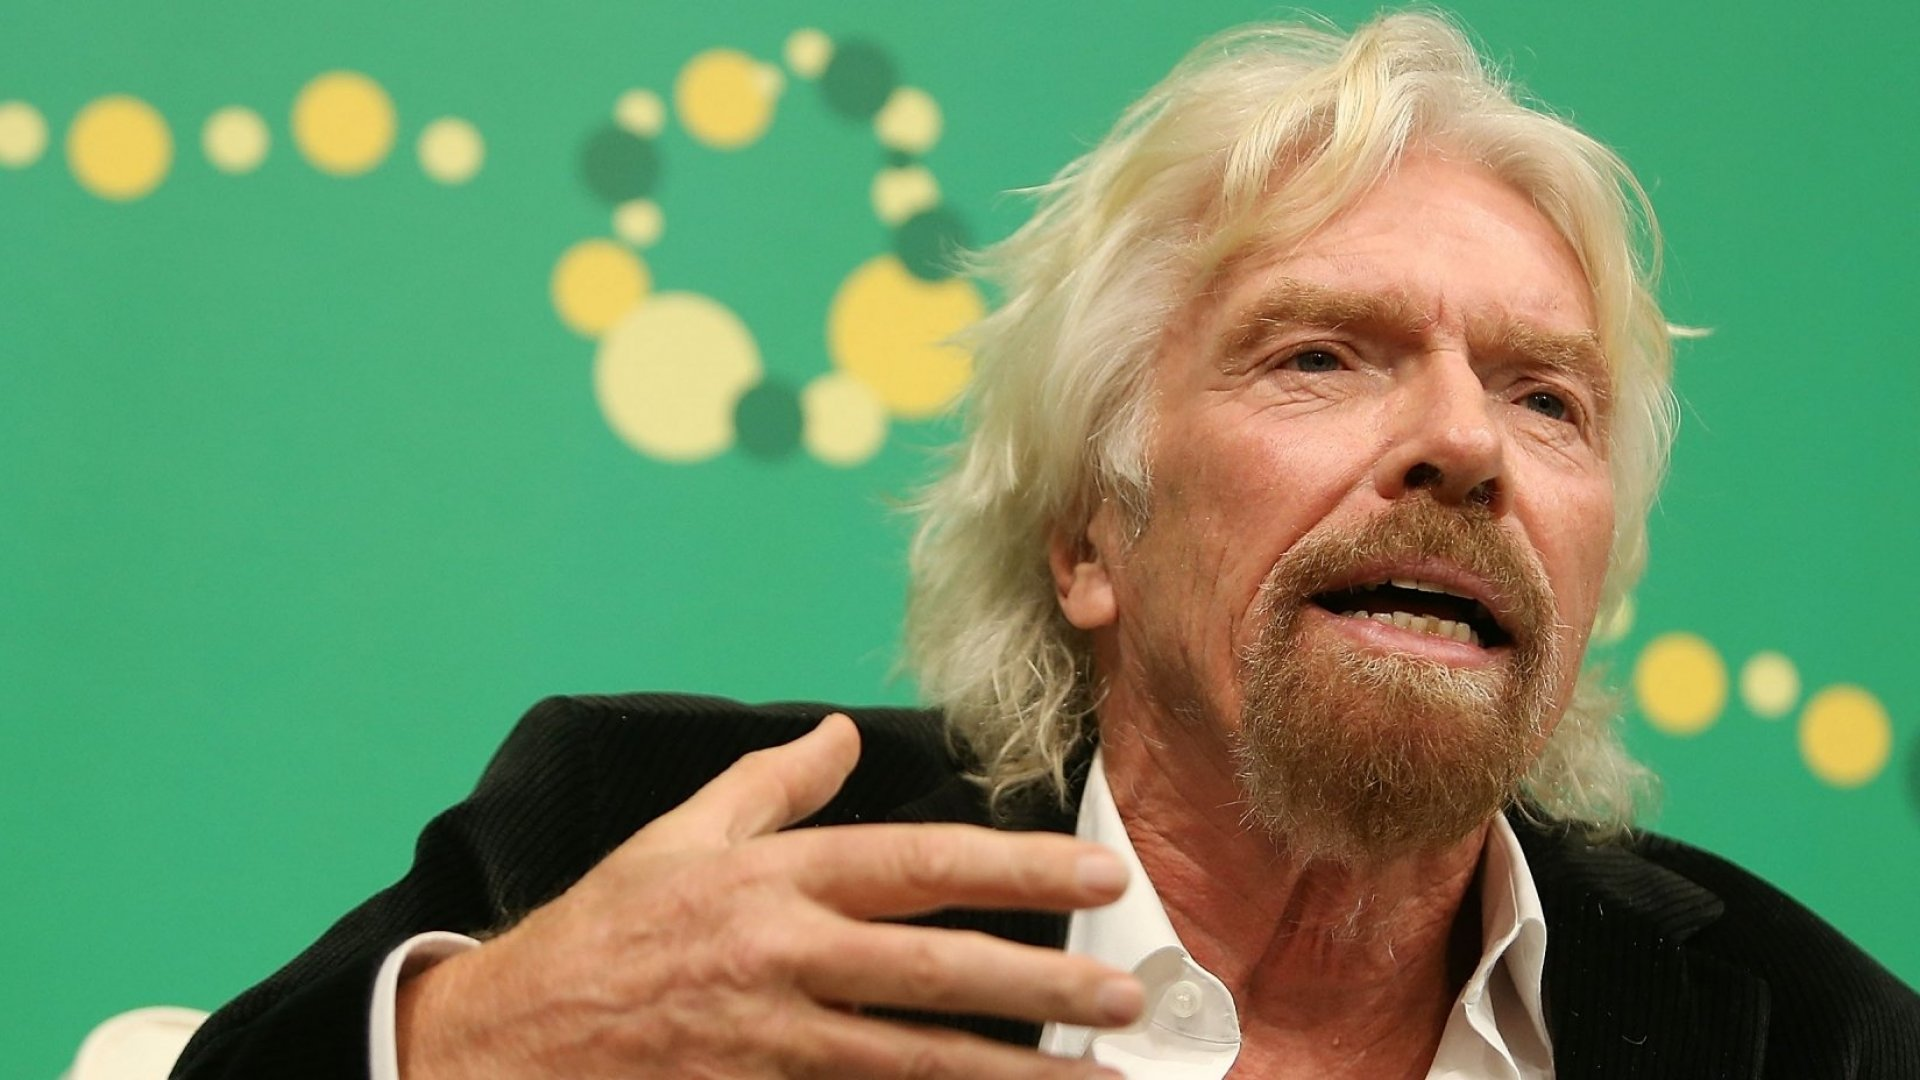 How Richard Branson Elon Musk And 28 Other Successful Entrepreneurs Get To Know Job Candidates Inc Com